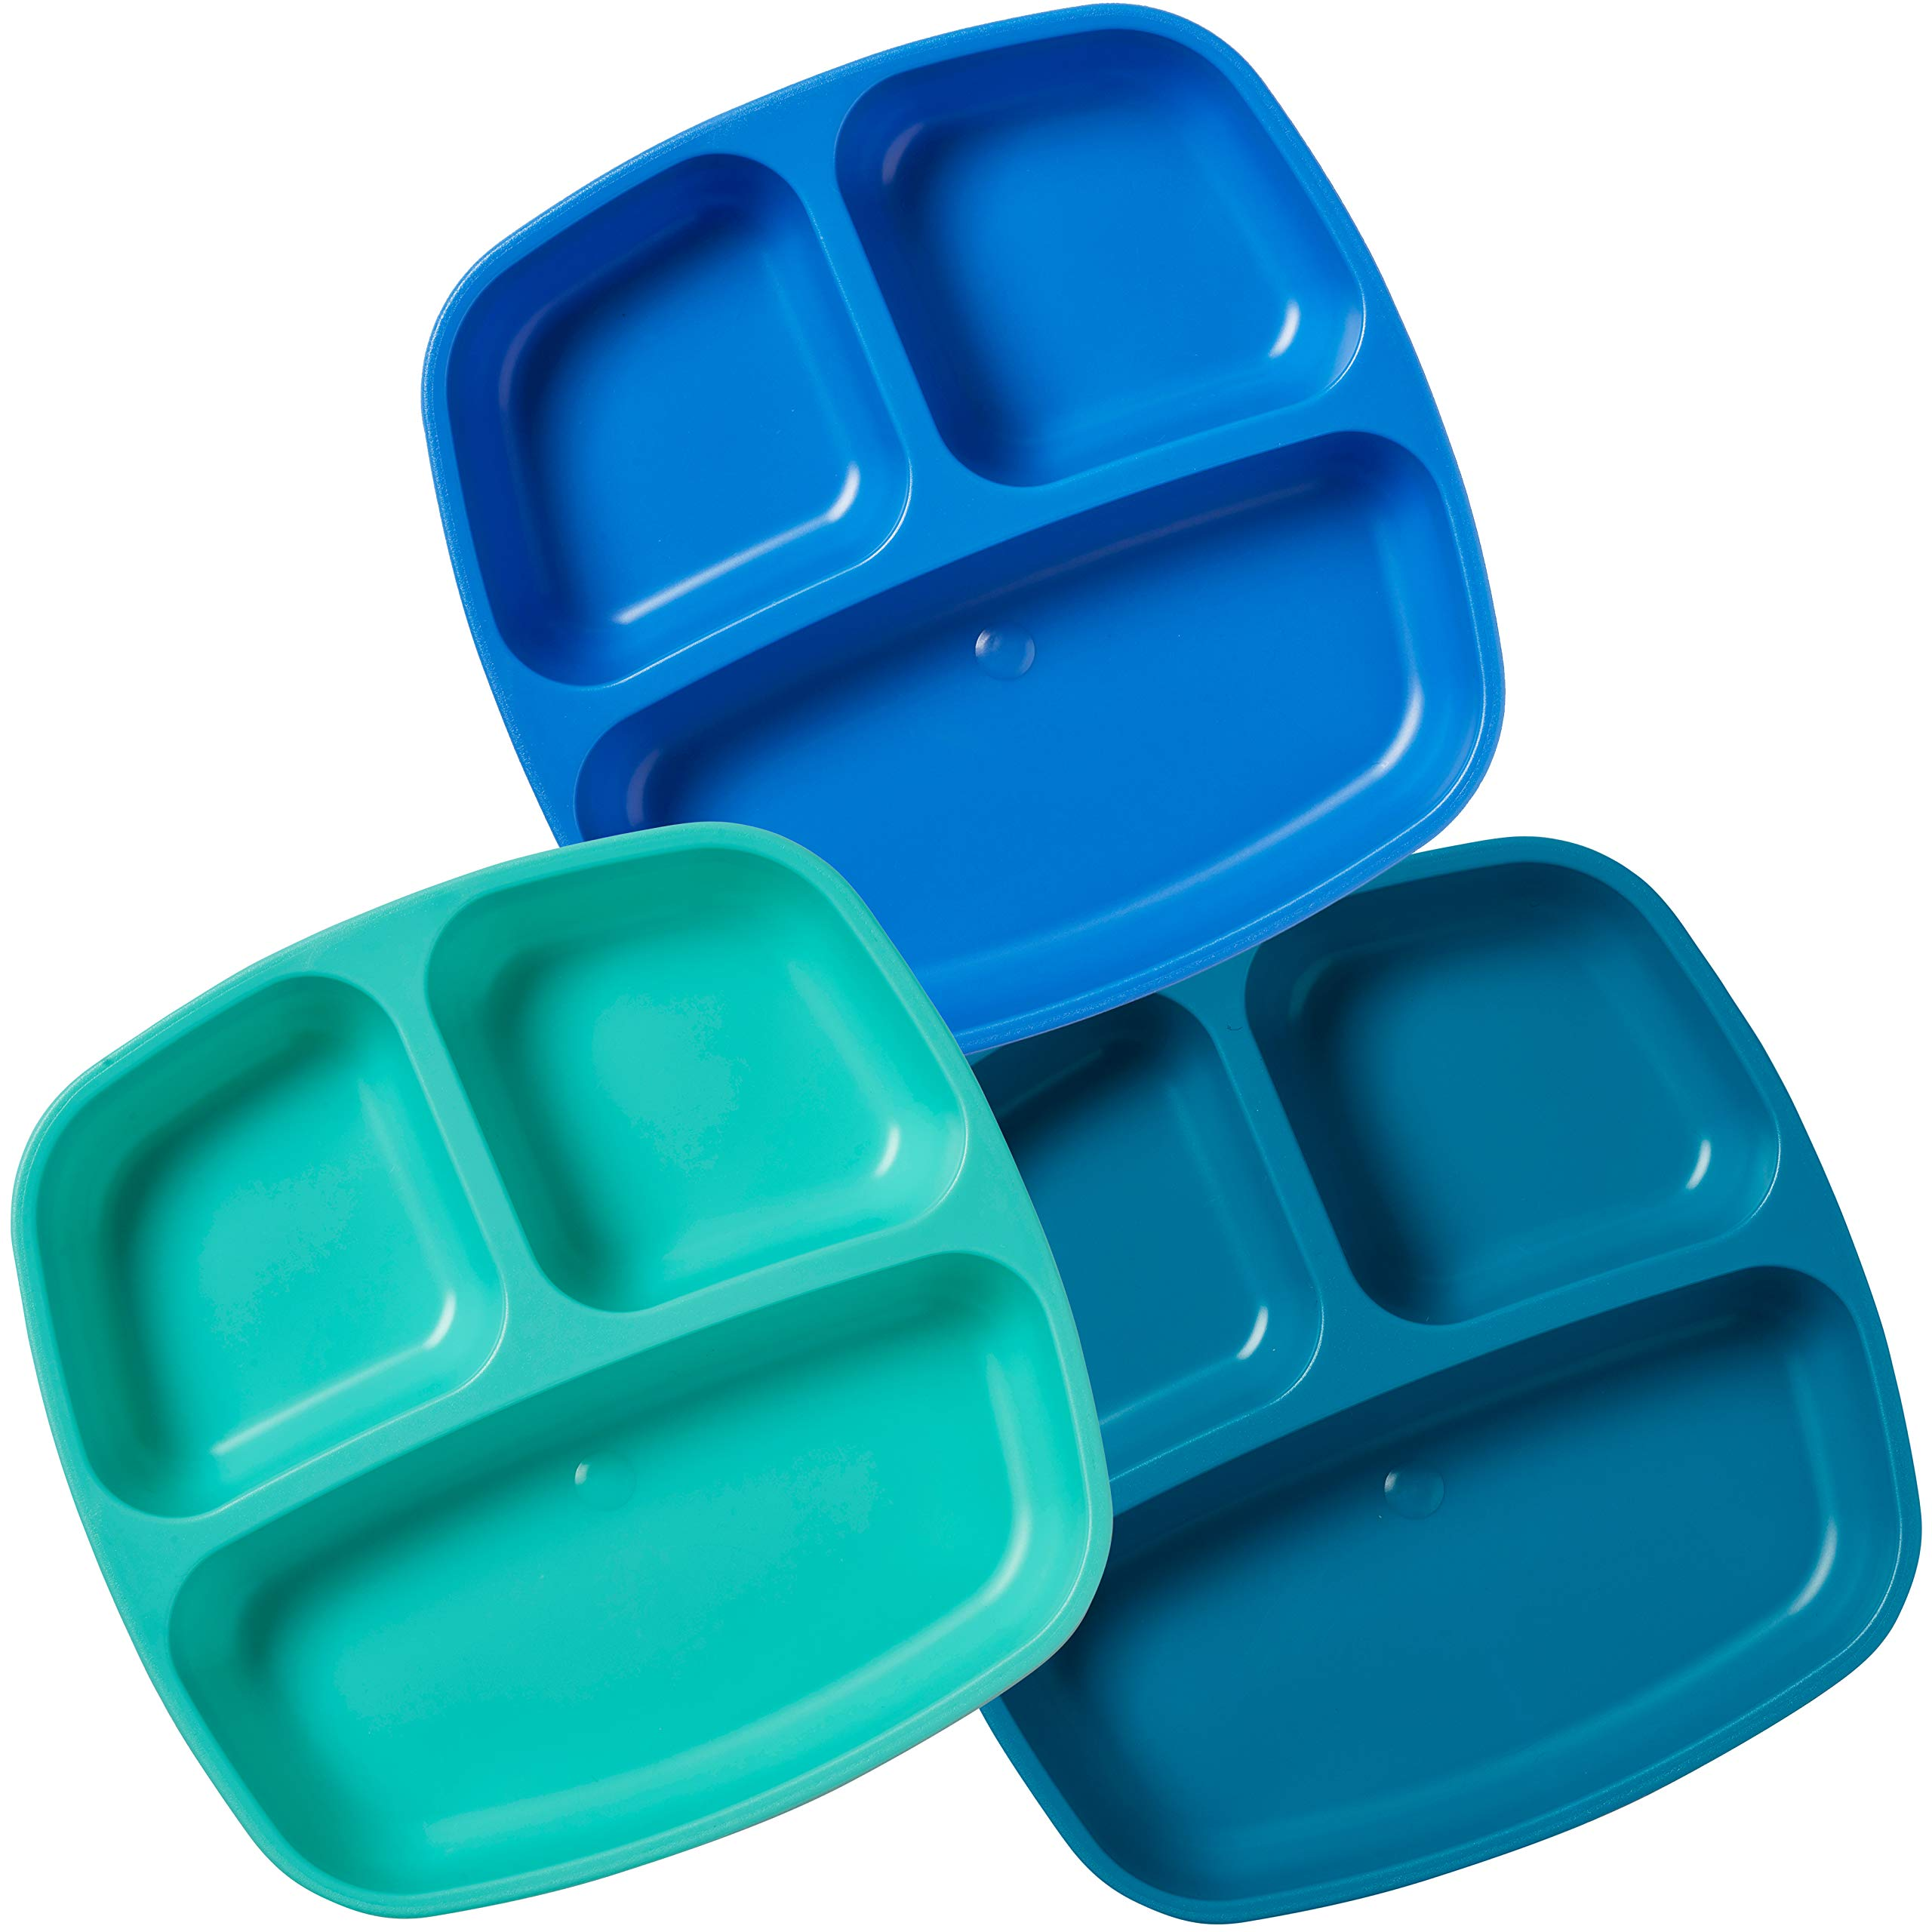 ECR4Kids My First Meal Pal Divided Toddler Plates - Stackable, BPA-Free Plastic Dishes, Dishwasher Safe, Portion Plate Set for Baby, Toddler and Child Feeding - 3-Pack, Tropical by ECR4Kids